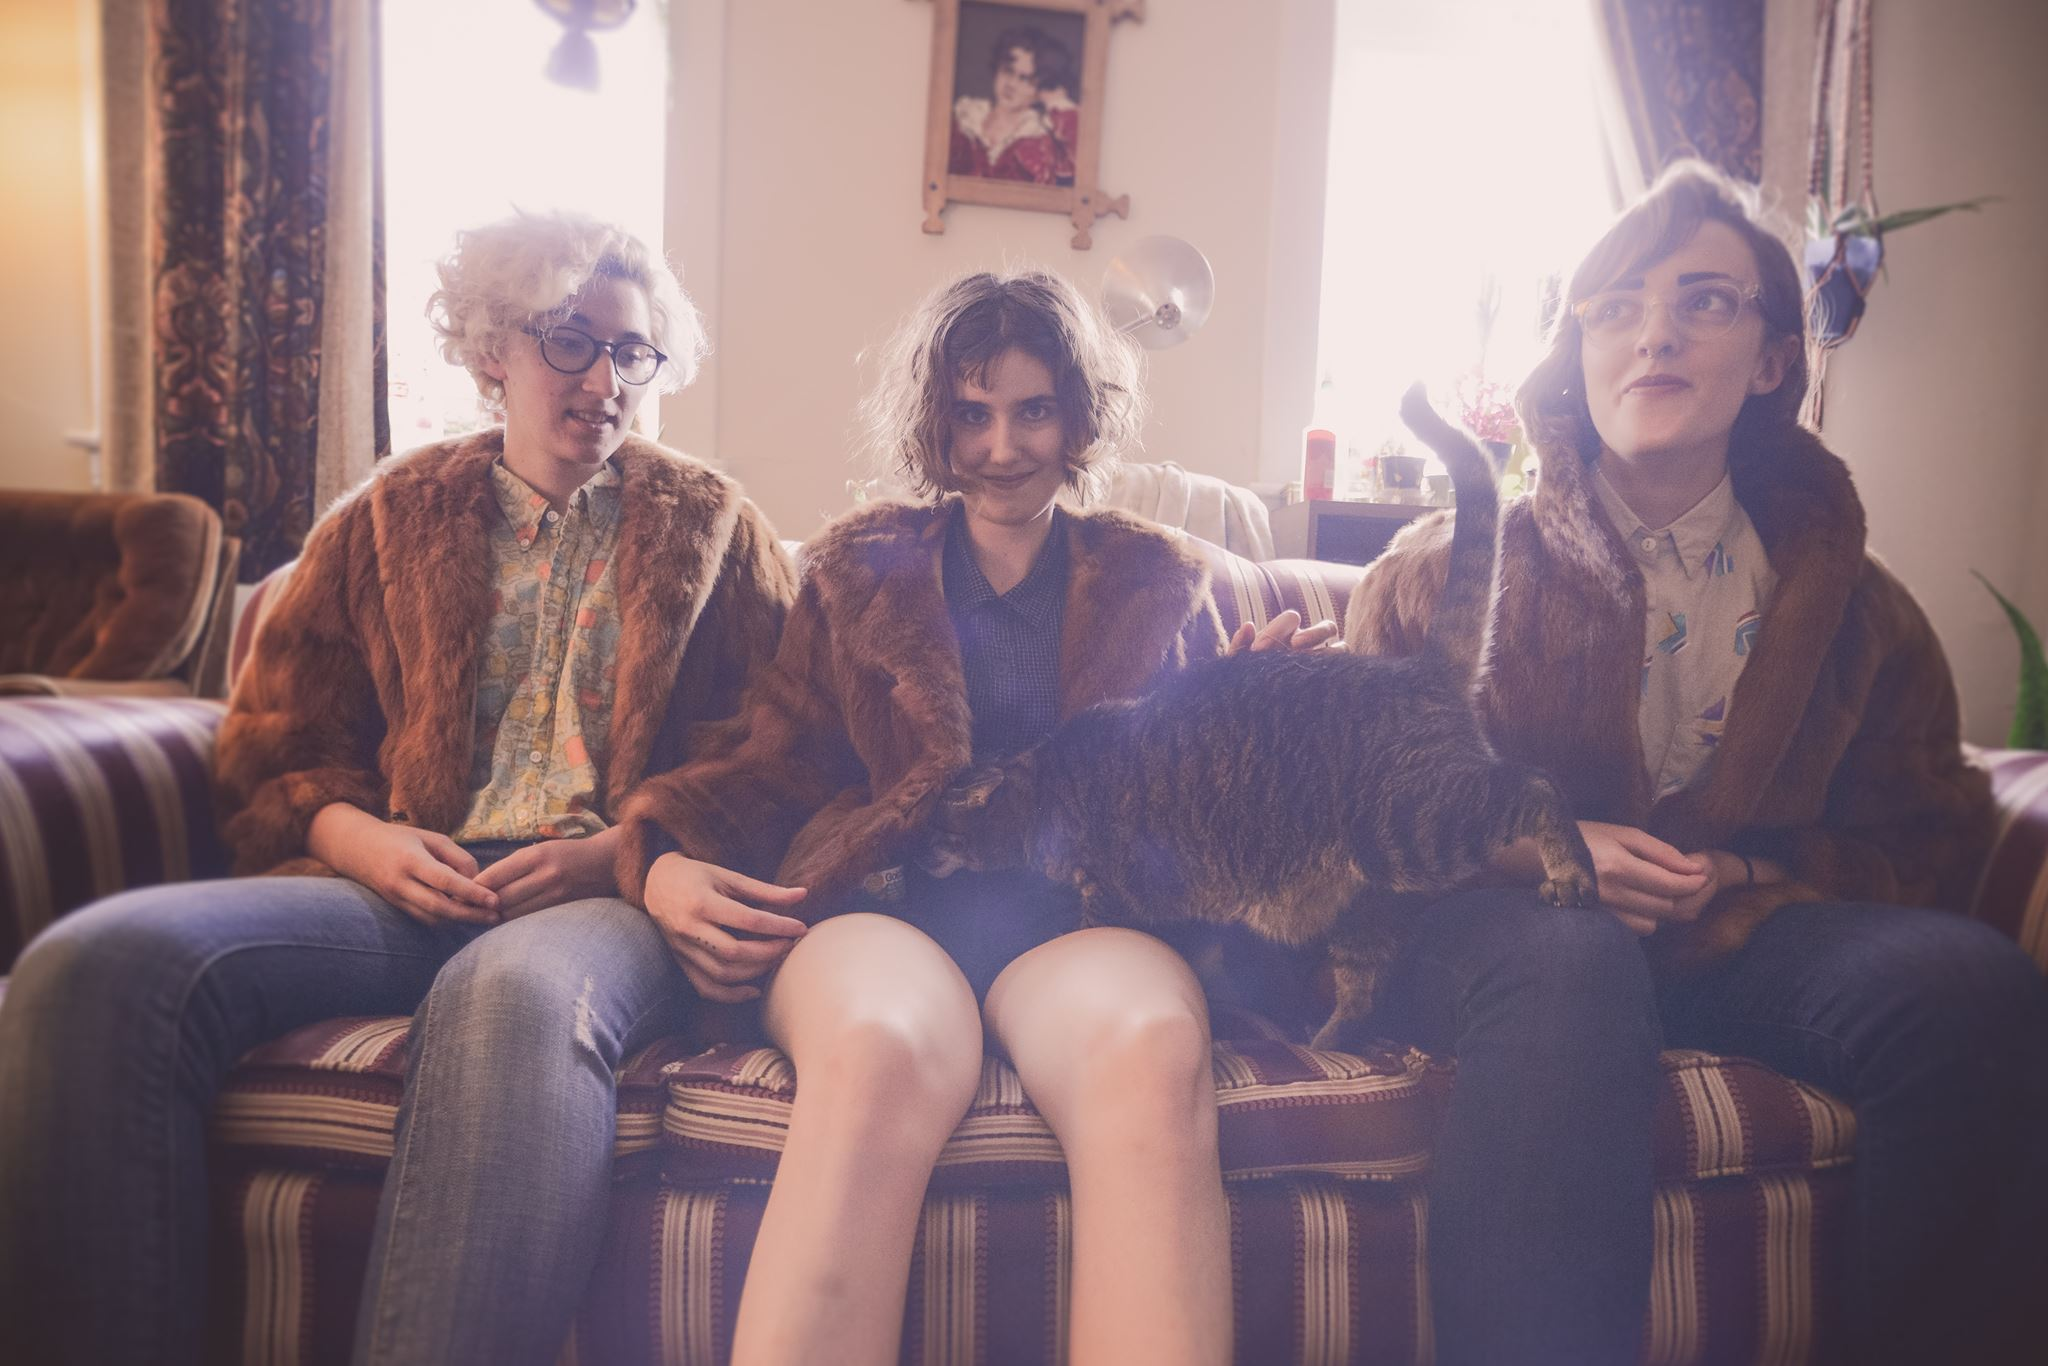 CITY SLANG interviews LONELY PARADE